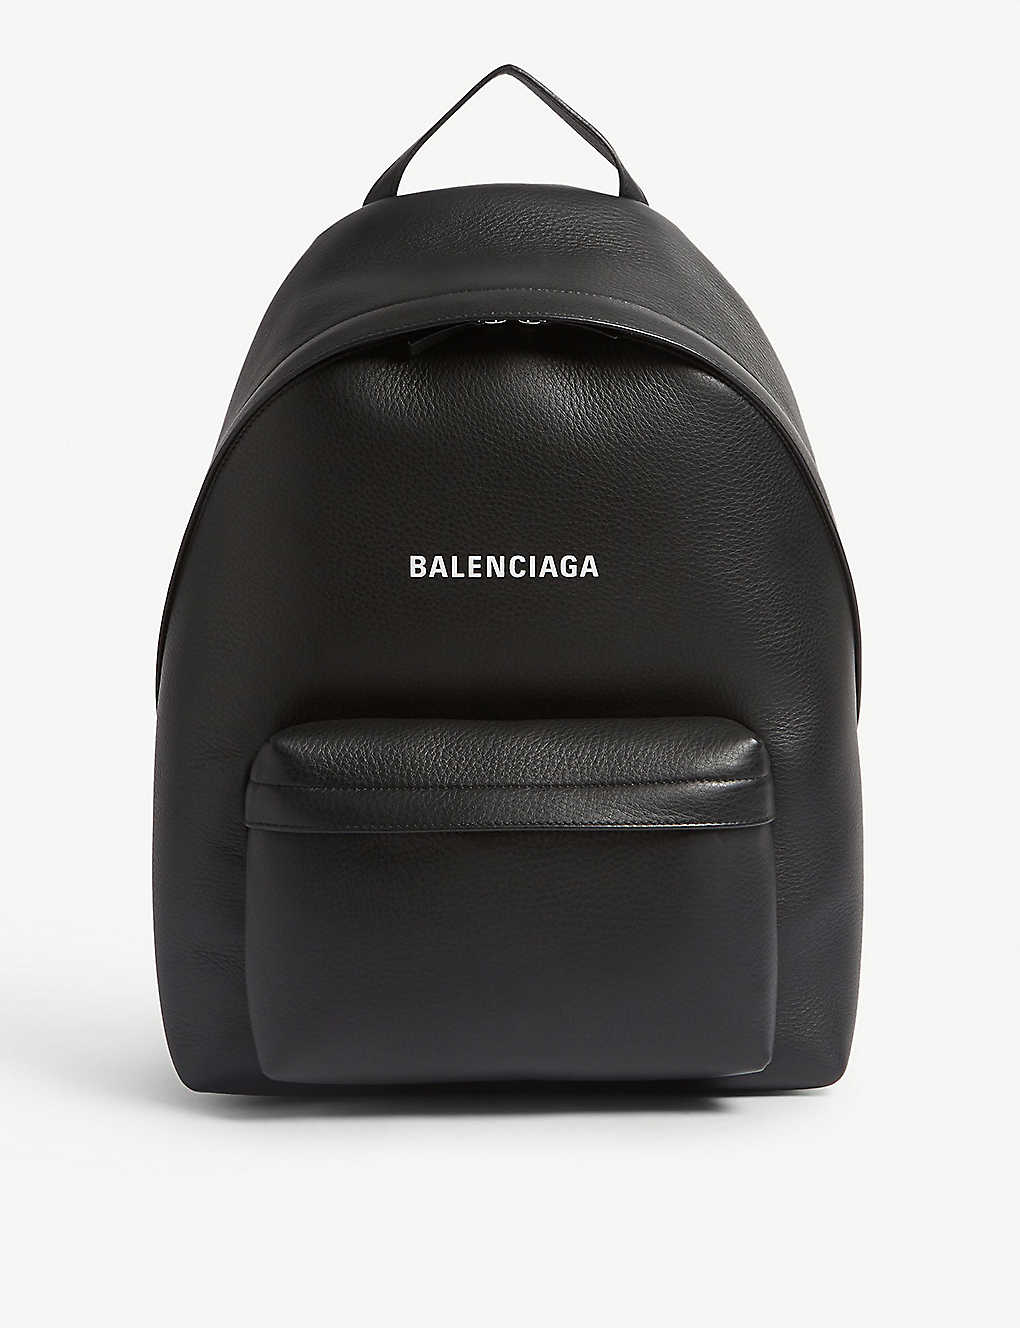 abda67807e BALENCIAGA - Everyday leather backpack | Selfridges.com